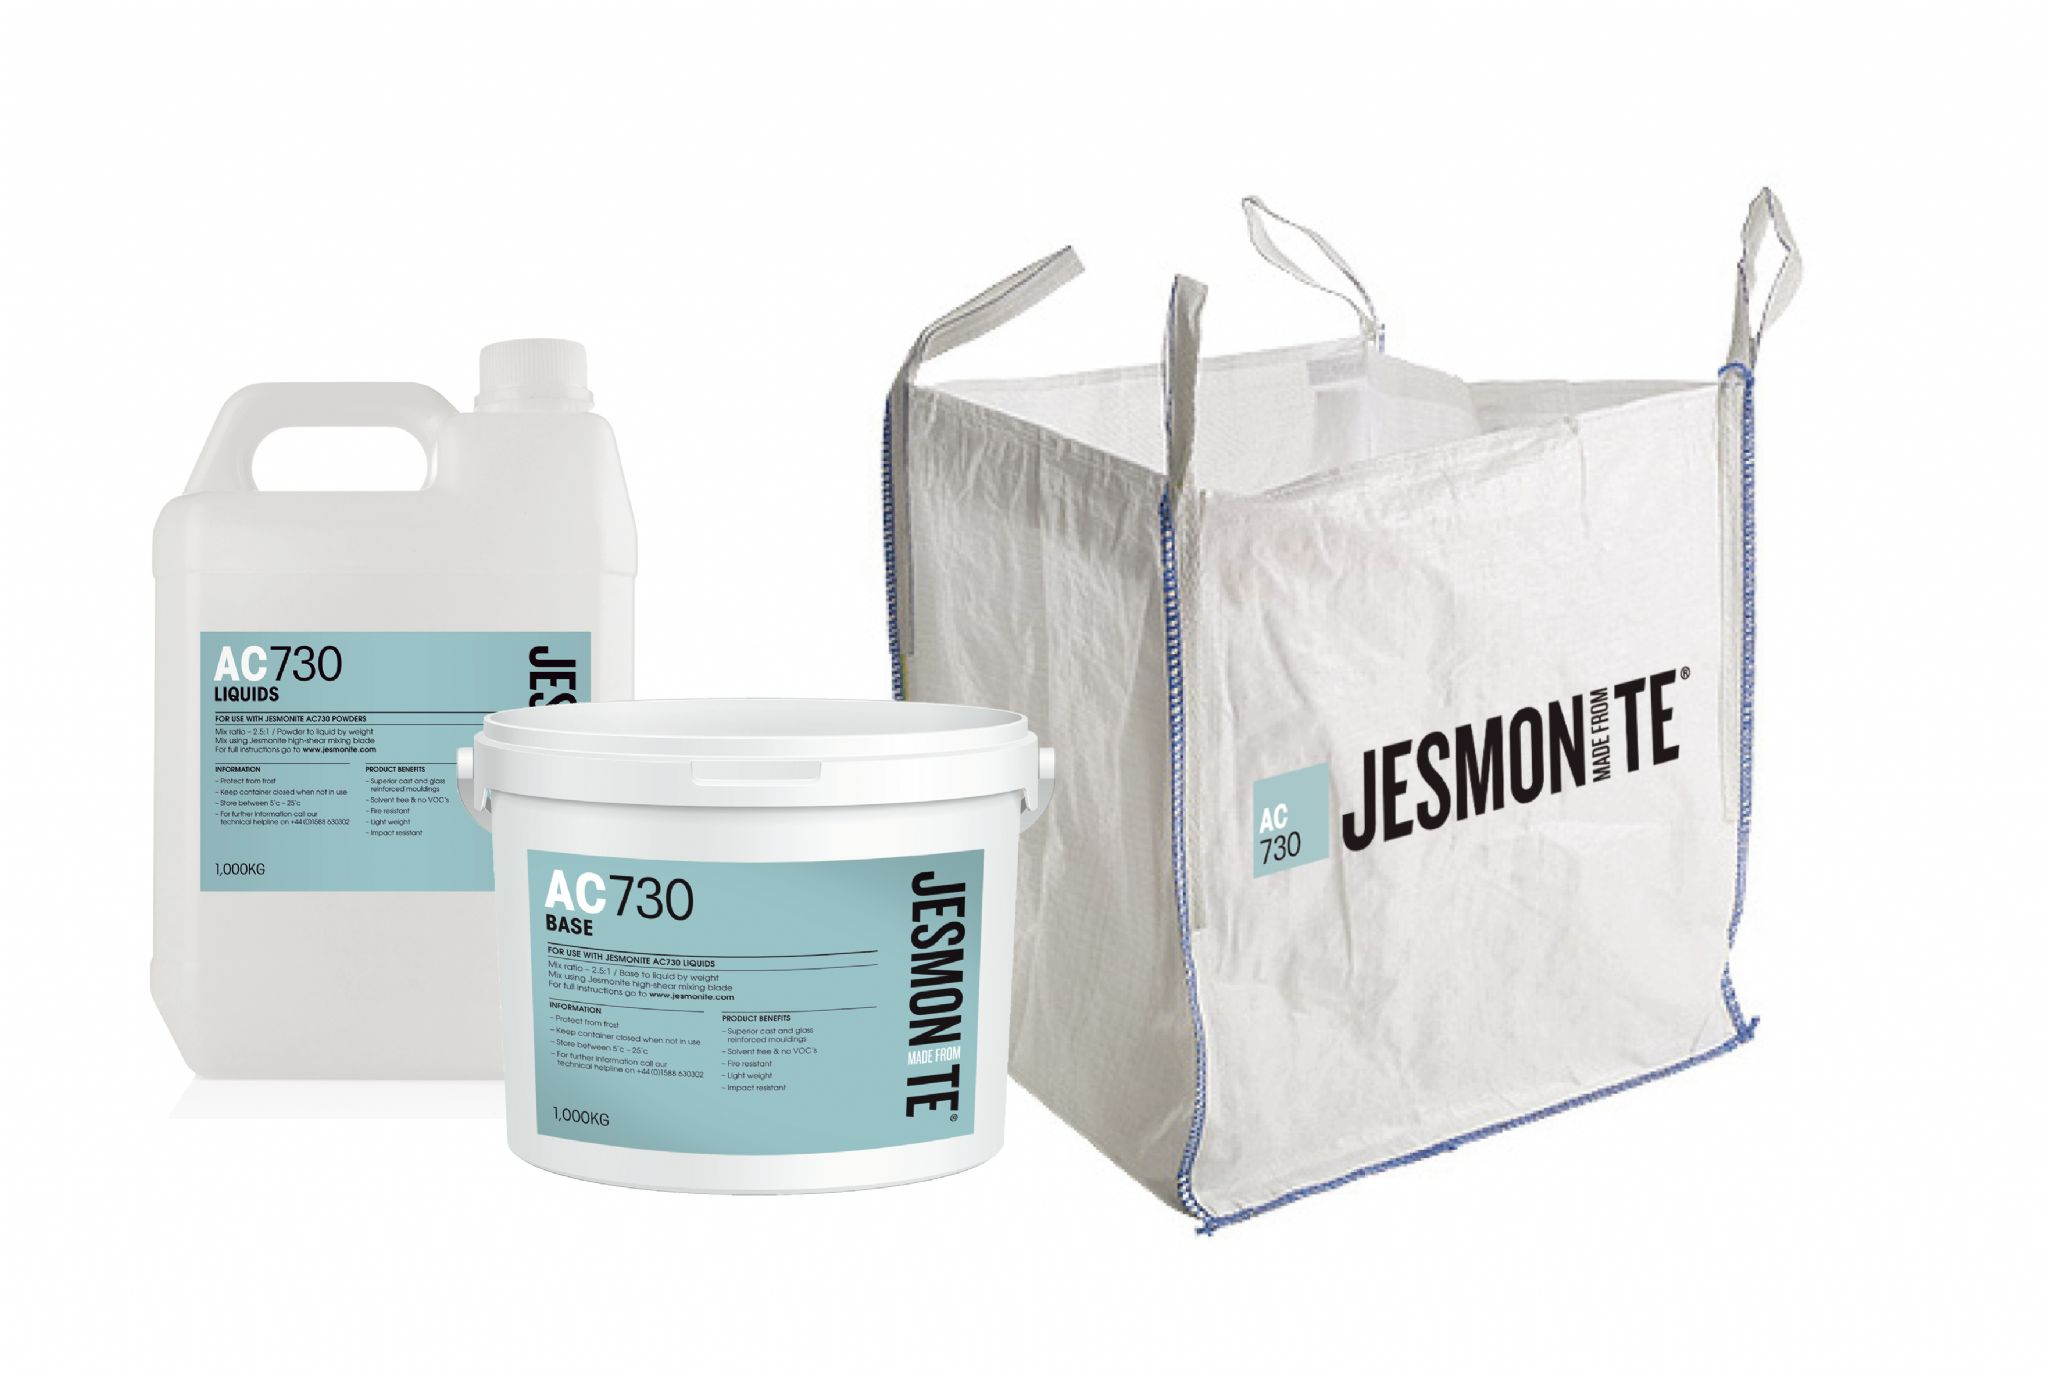 Jesmonite 150kg Kit